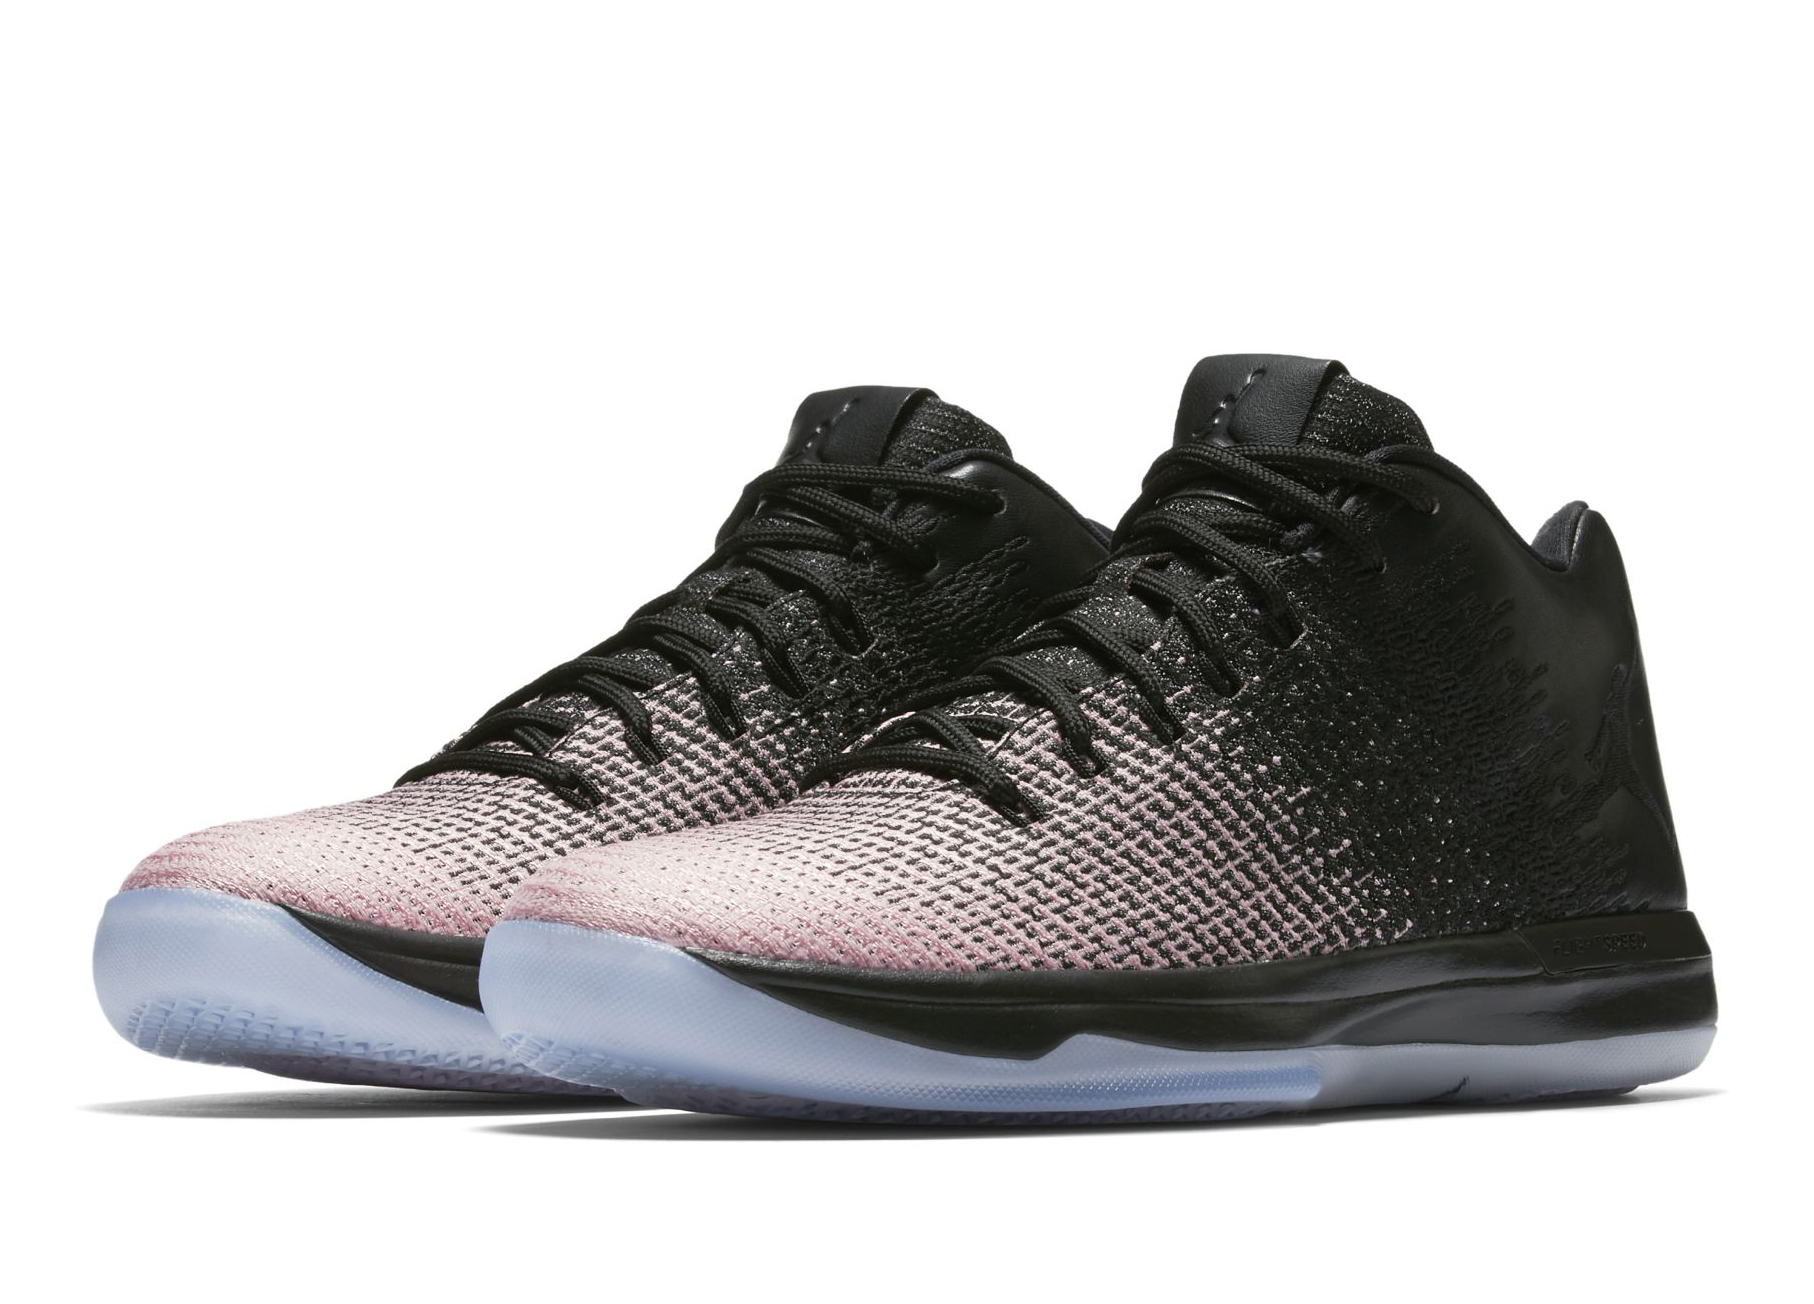 8c4f259ec4035a Air Jordan 31 Archives - Air Jordans